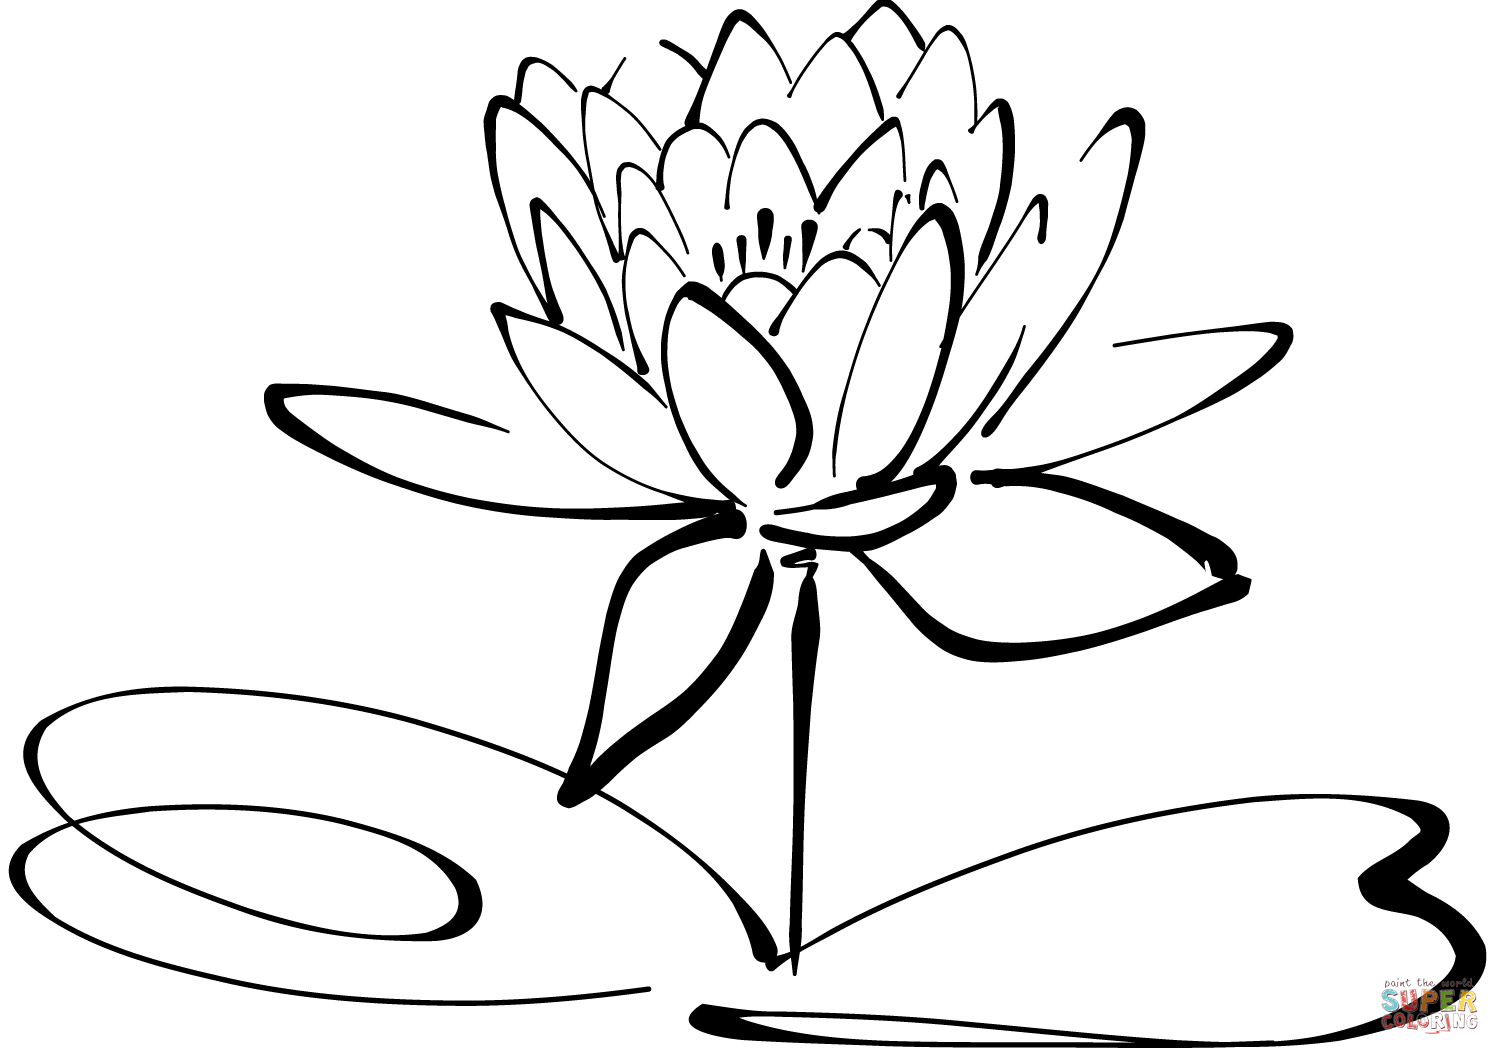 Lily of the valley flower drawing at getdrawings free for 1500x1050 printable lily pad coloring pages for kids and toodler page izmirmasajfo